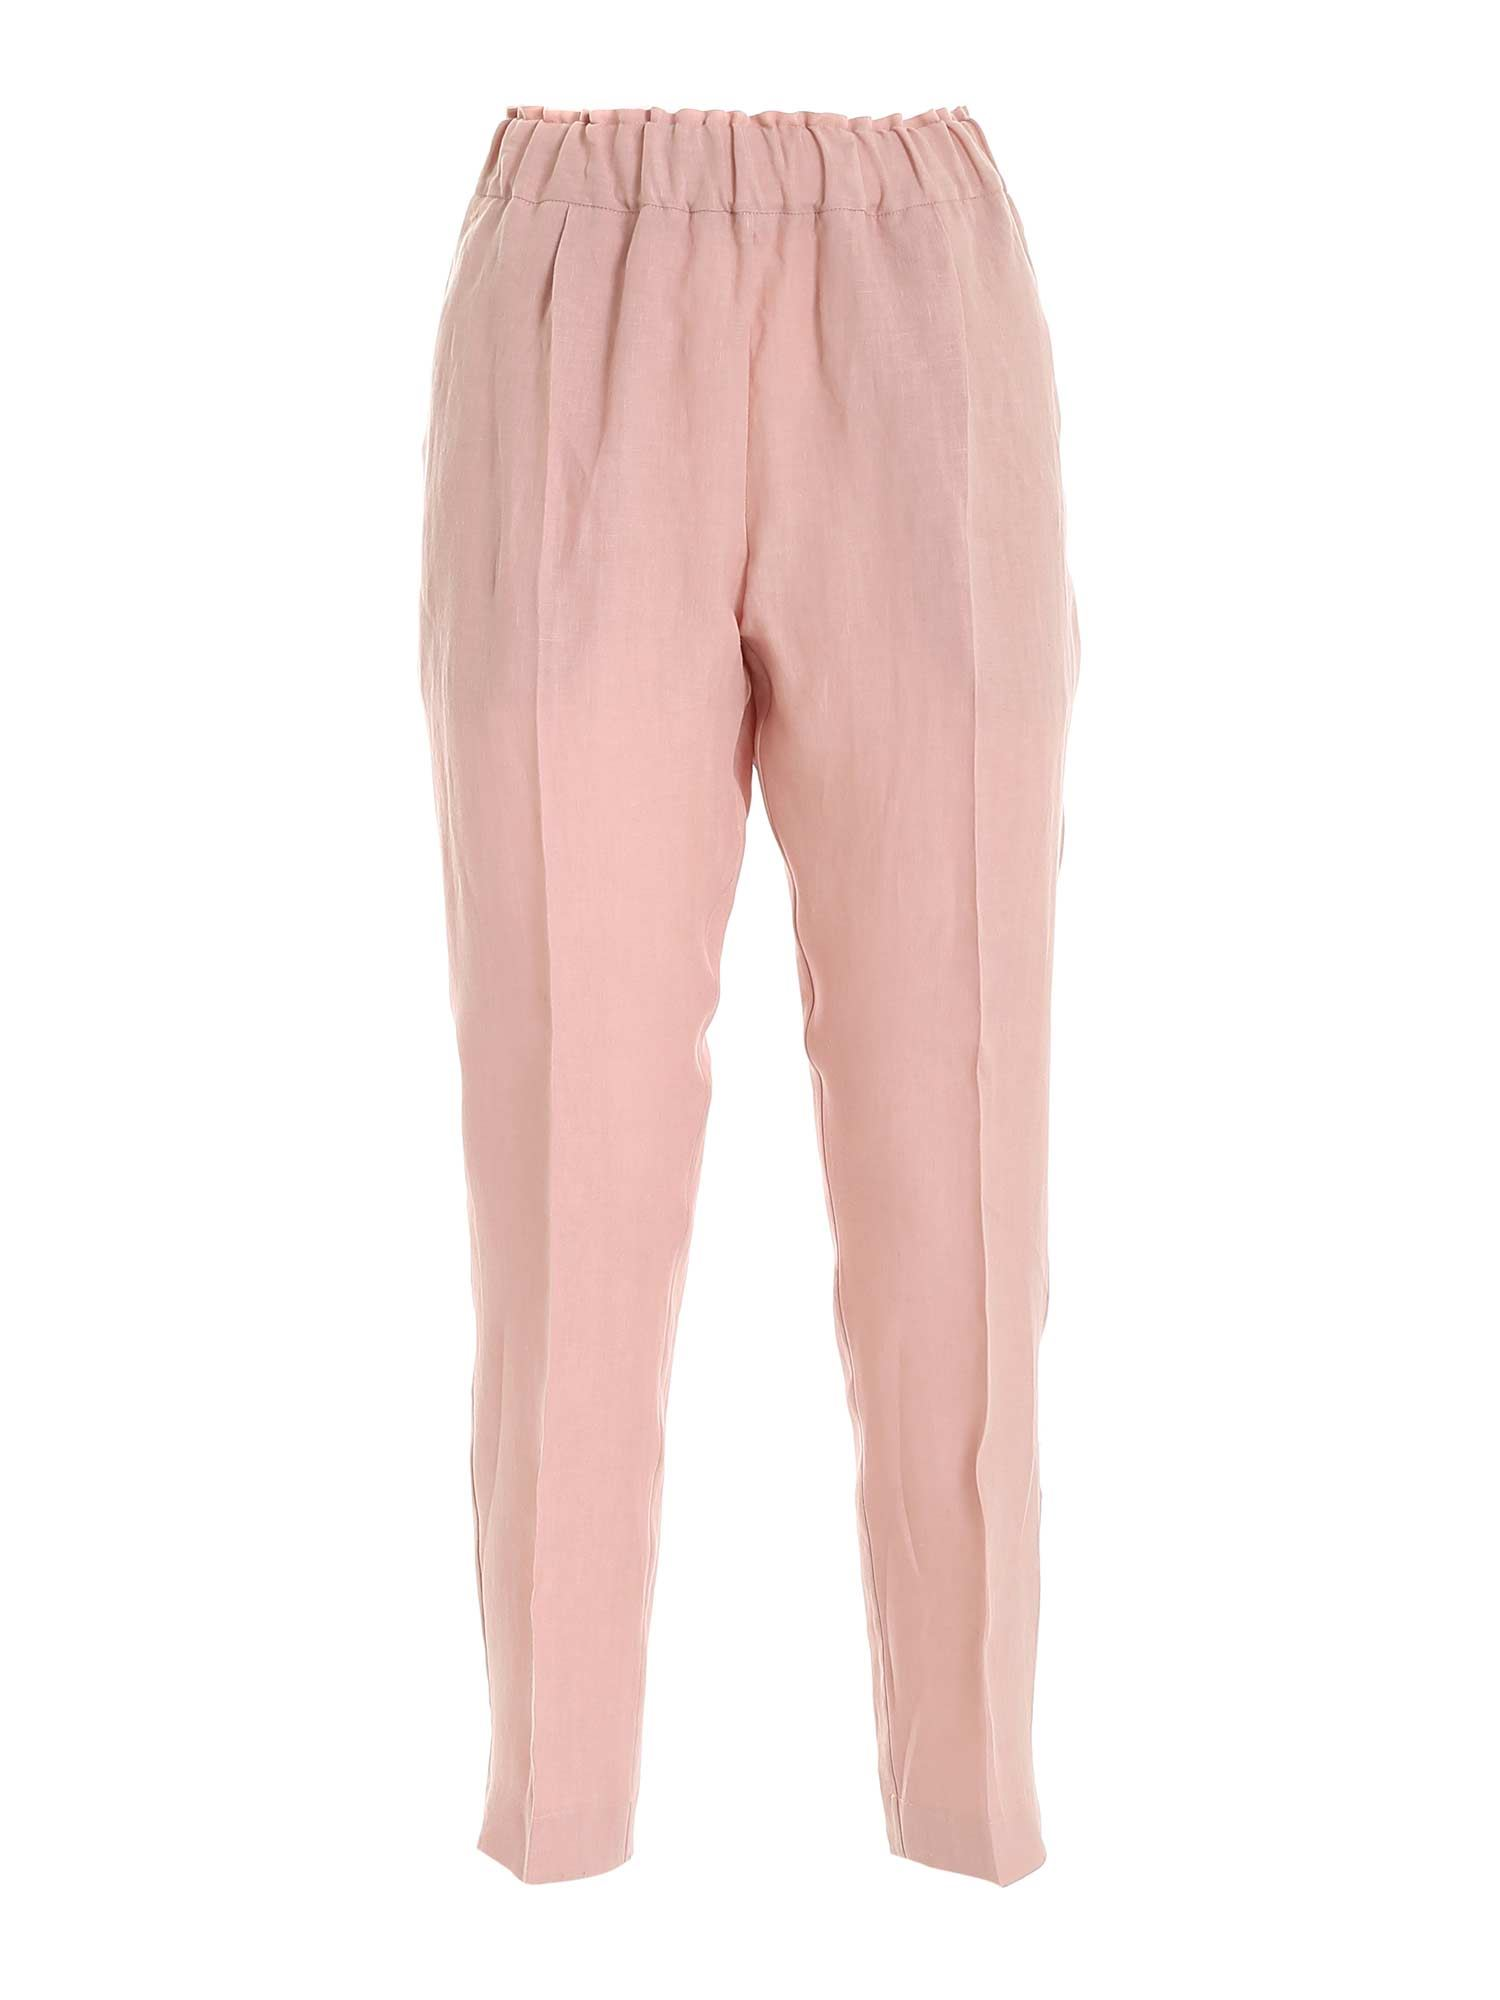 Le Tricot Perugia Pants LINEN PANTS IN PINK